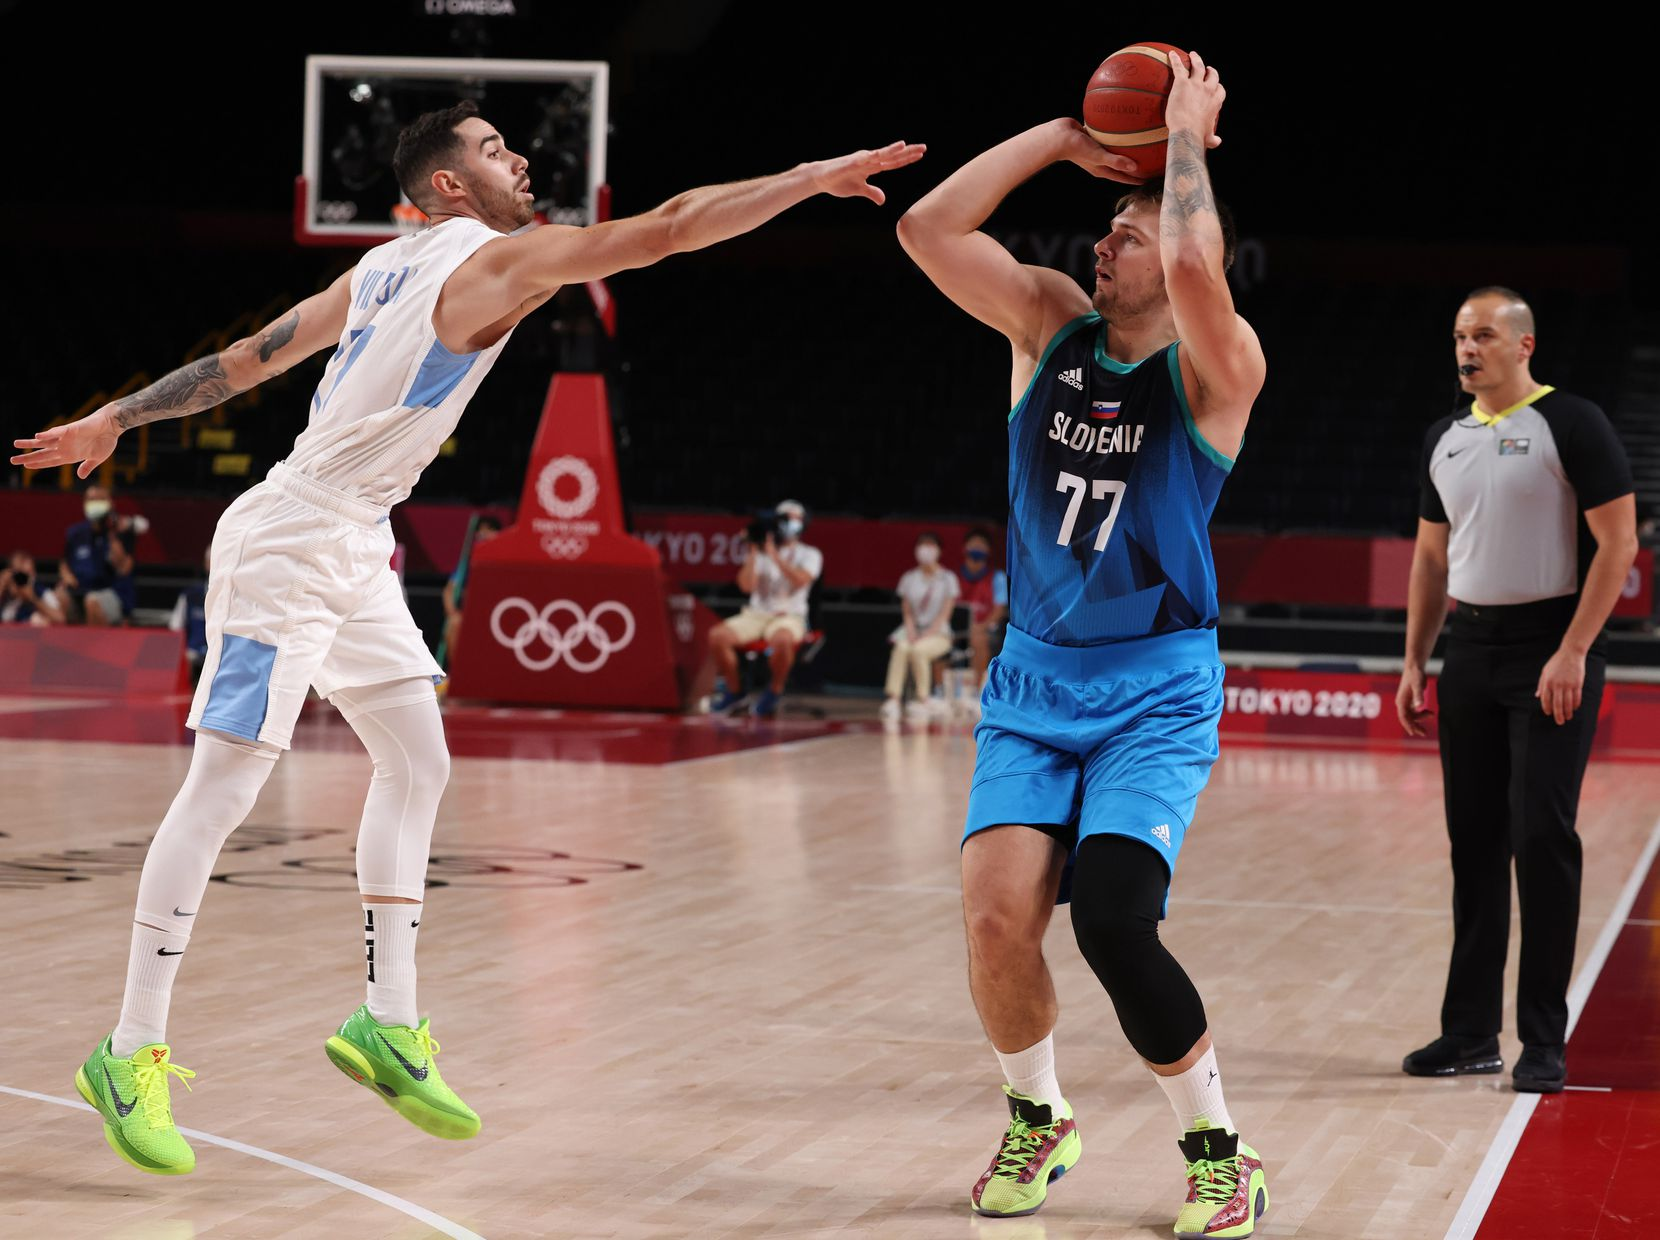 Slovenia's Luka Doncic (77) shoots a three over Argentina's Luca Vildoza (17) in the first half of play during the postponed 2020 Tokyo Olympics at Saitama Super Arena on Monday, July 26, 2021, in Saitama, Japan. Slovenia defeated Argentina 118-100. (Vernon Bryant/The Dallas Morning News)